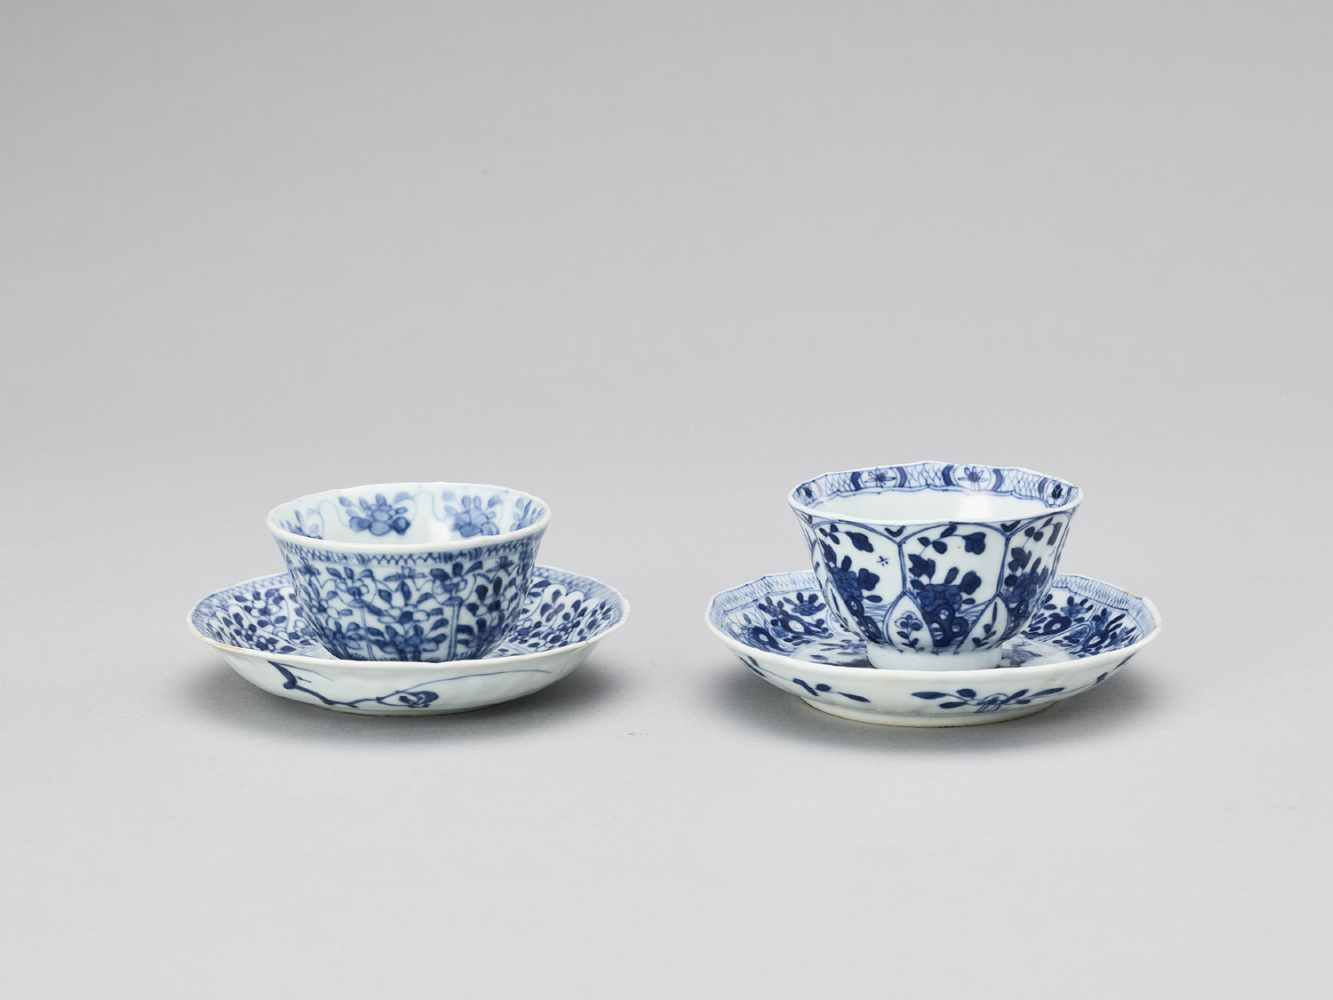 A PAIR OF BLUE AND WHITE PORCELAIN CUPS WITH MATCHING PLATES, KANGXI